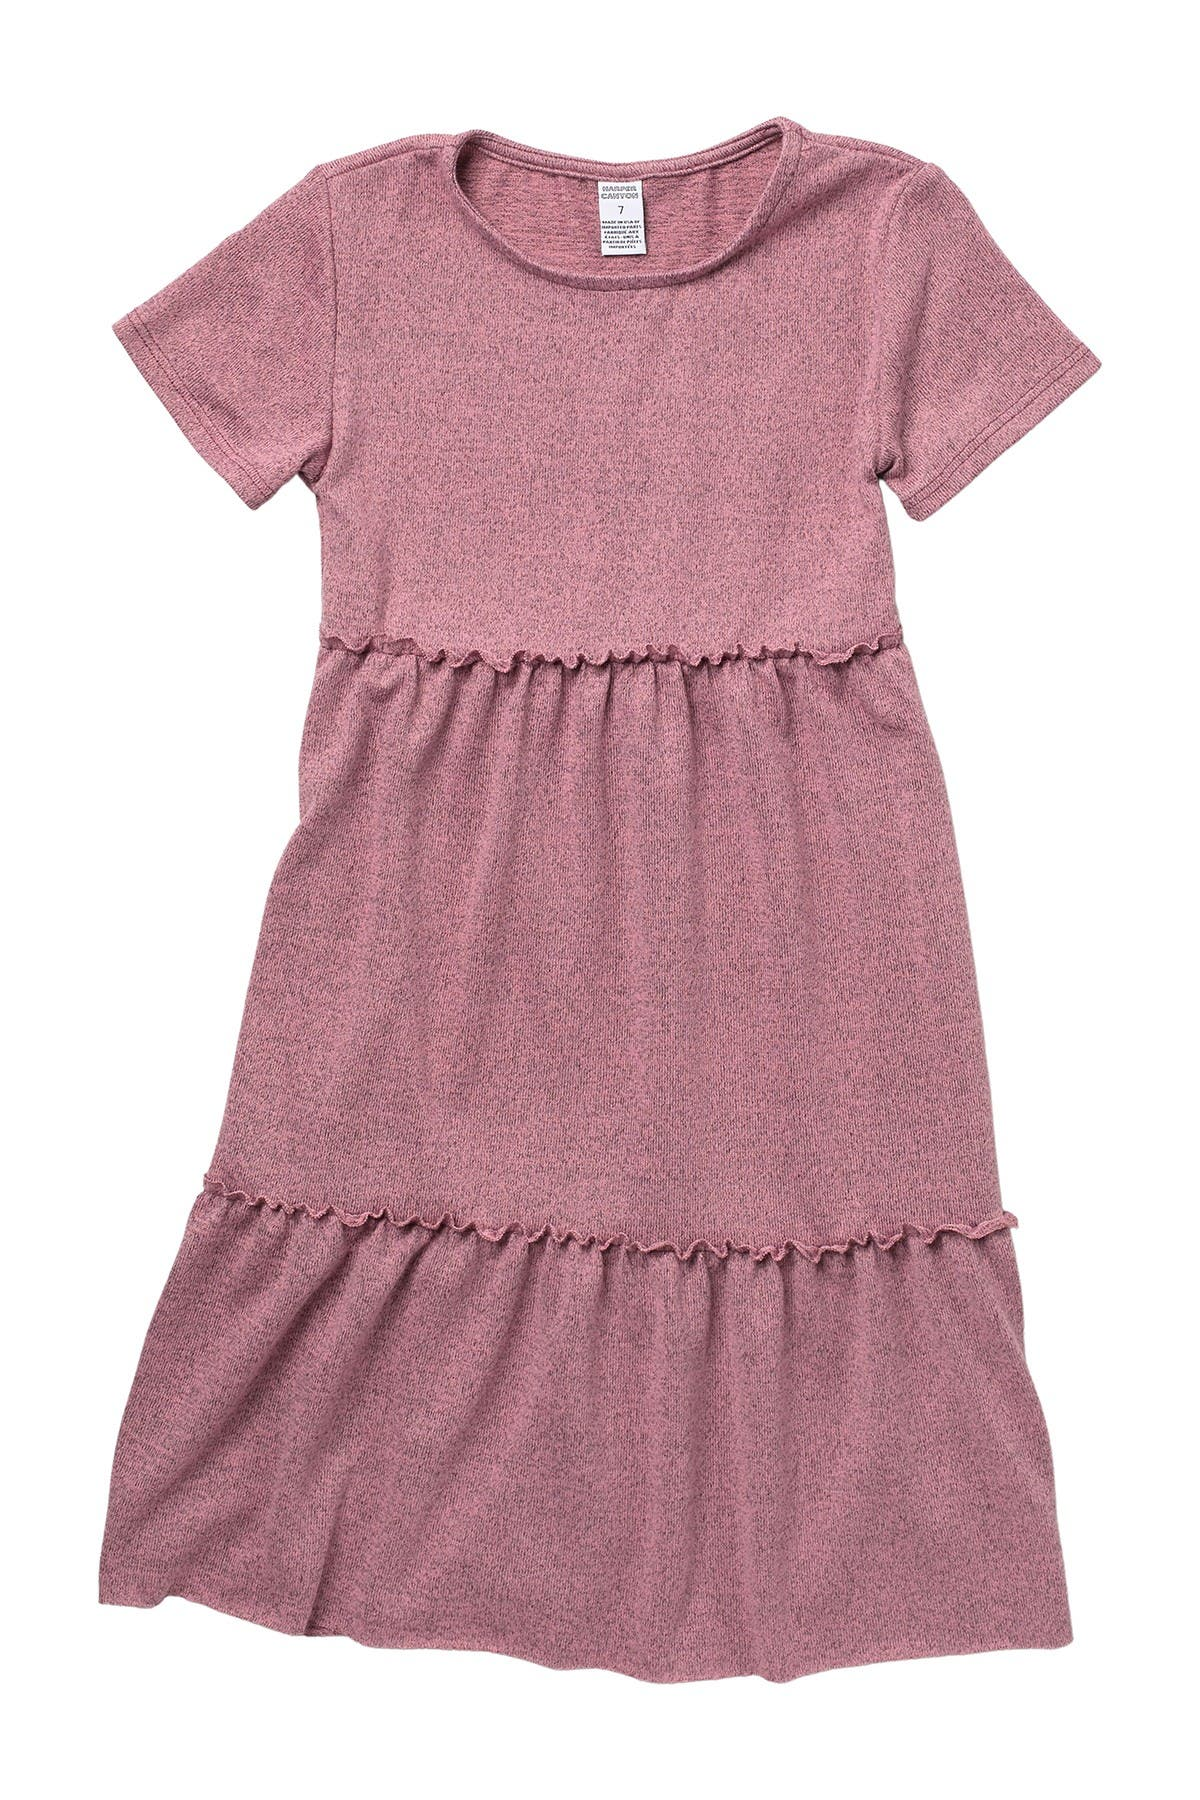 Image of Harper Canyon Heather Tiered Dress